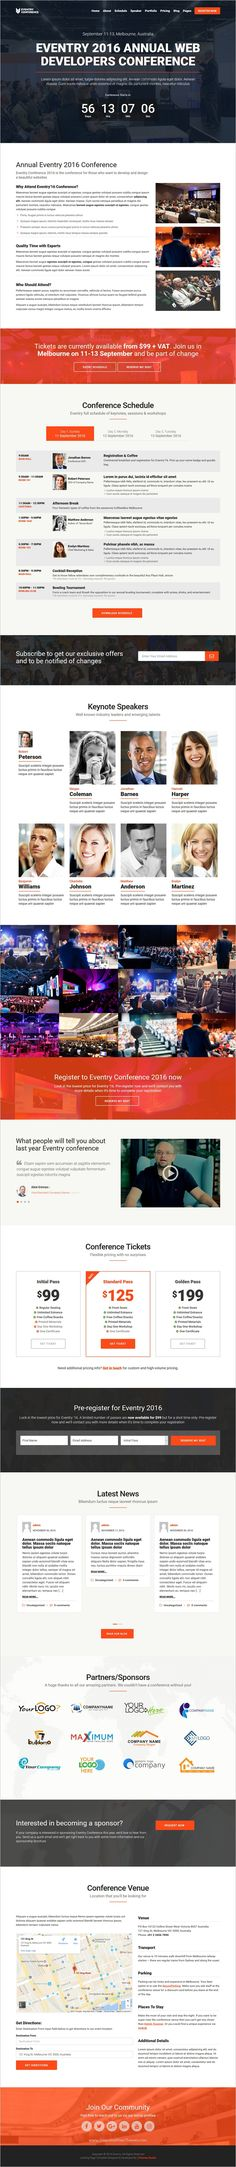 BeEvent - Conference \ Event HTML Template - conference schedule template